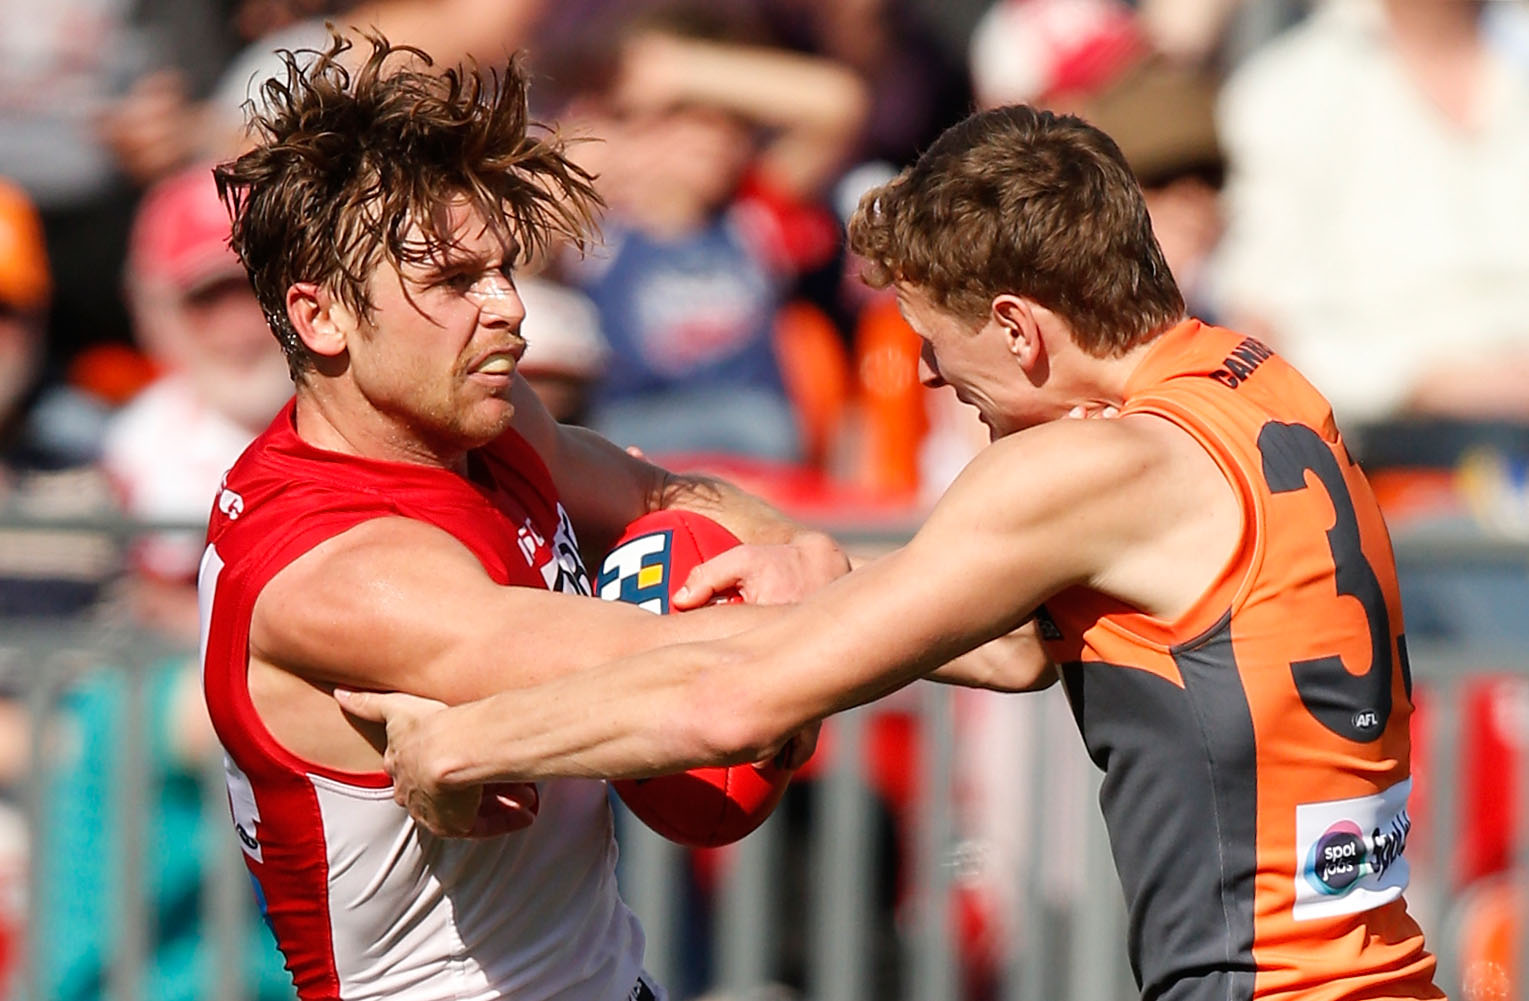 The Swans and GIANTS will play two derbies in the first 12 rounds of 2016. (Photo by Michael Willson/AFL Media)